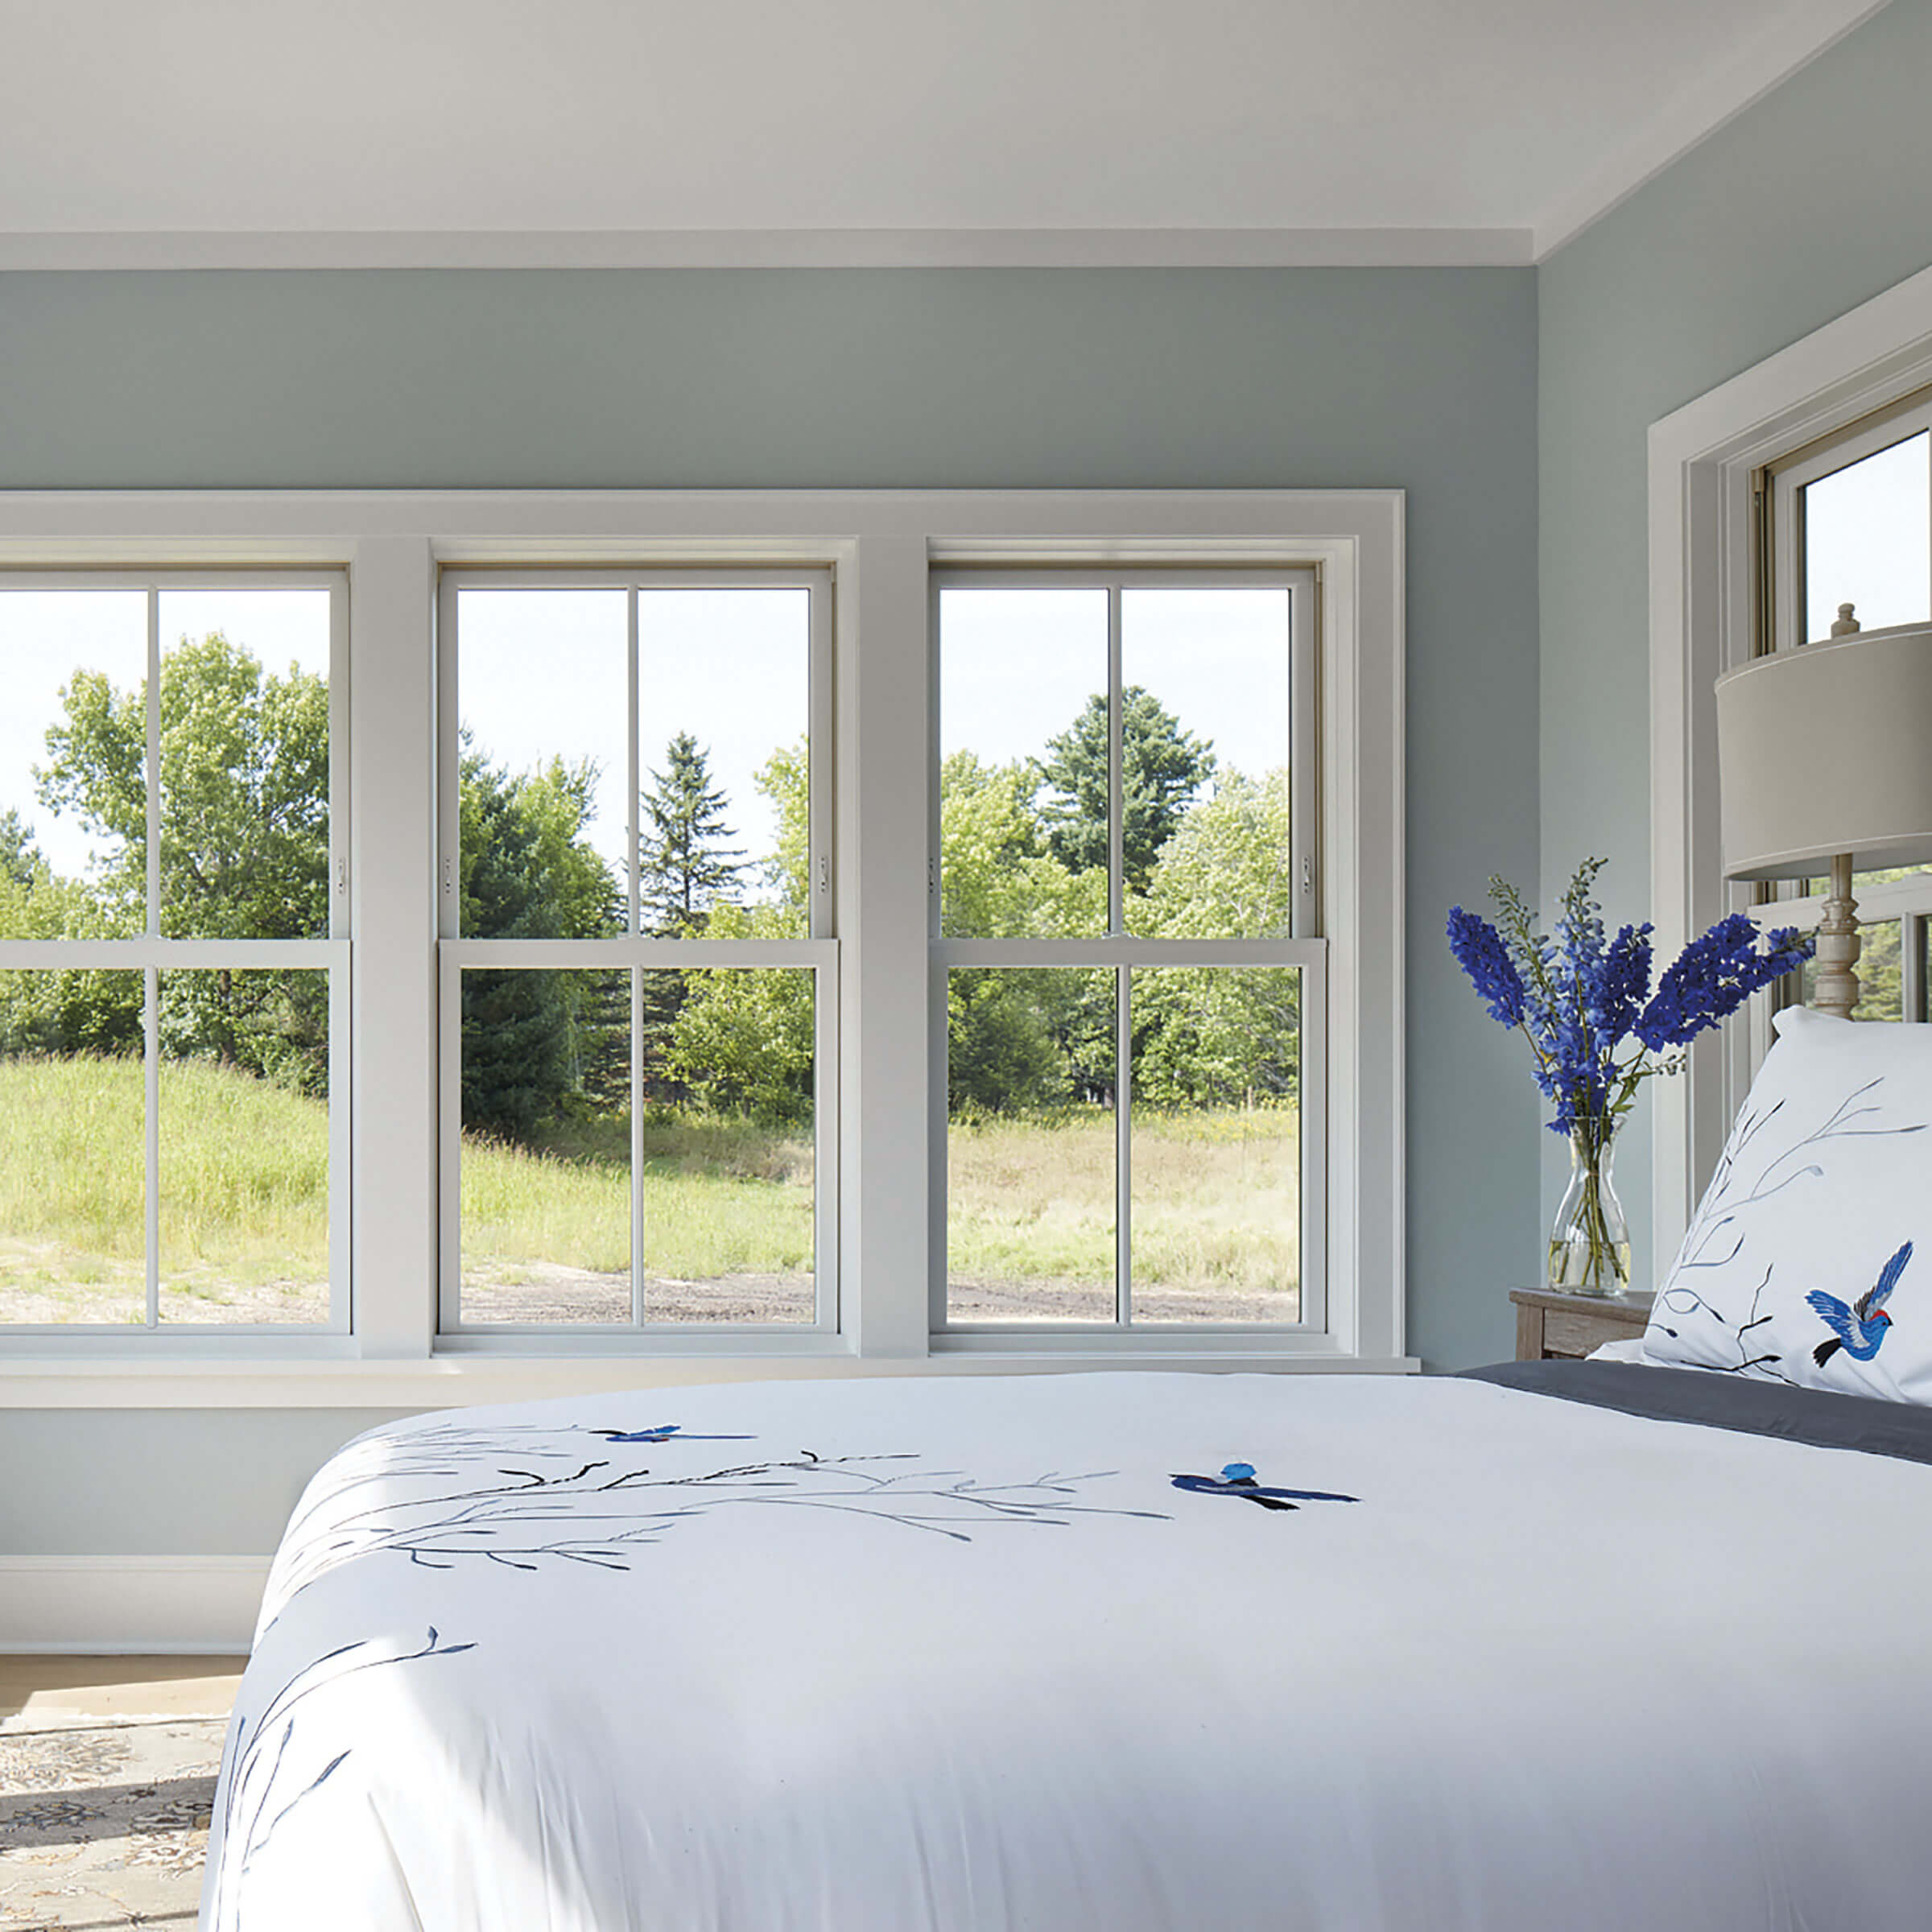 Bright Bedroom With Marvin Elevate Double Hung Windows